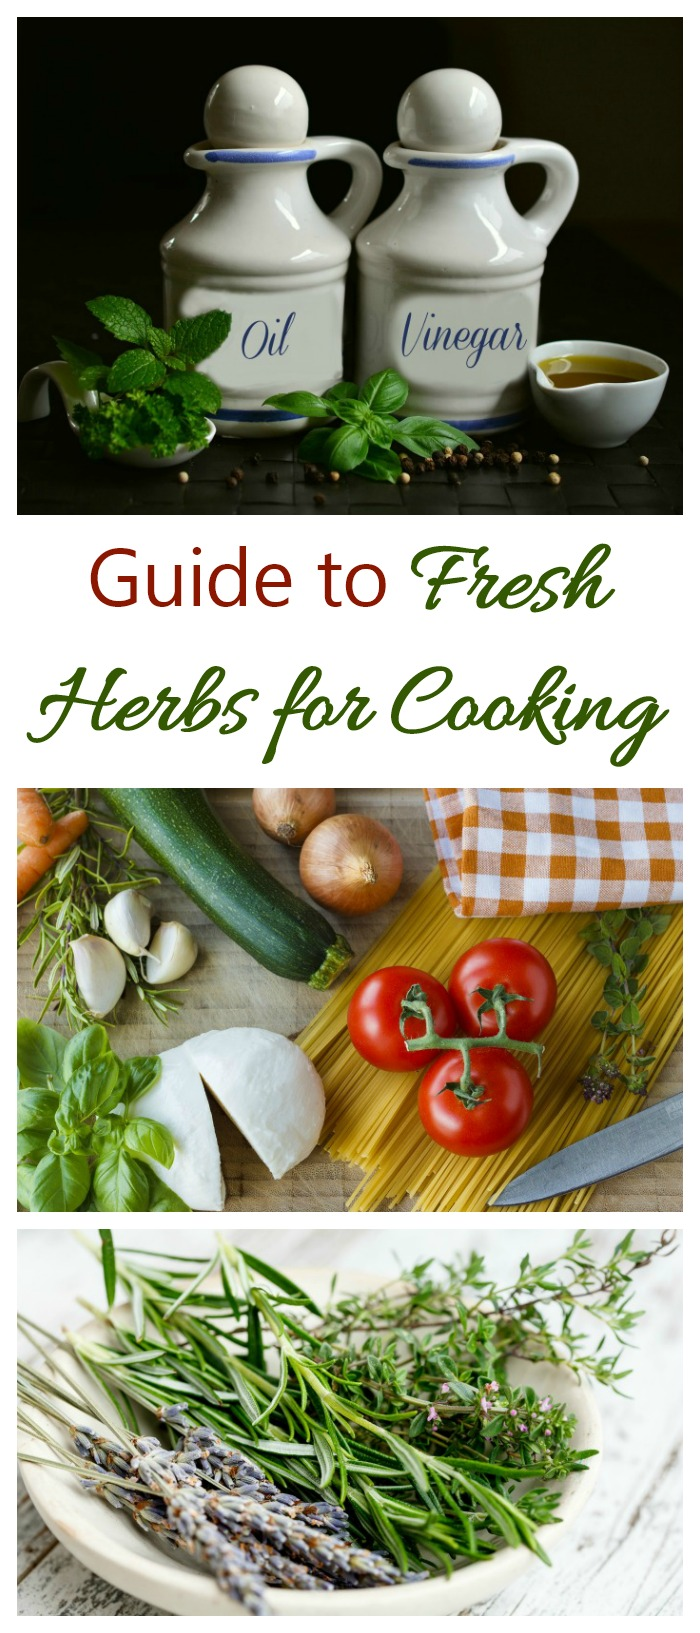 This Guide to Fresh Herbs gives buying, storing and fresh herb information as well as tips for using fresh herbs for cooking. #freshherbs #cookingwithherrbs #freshherbs